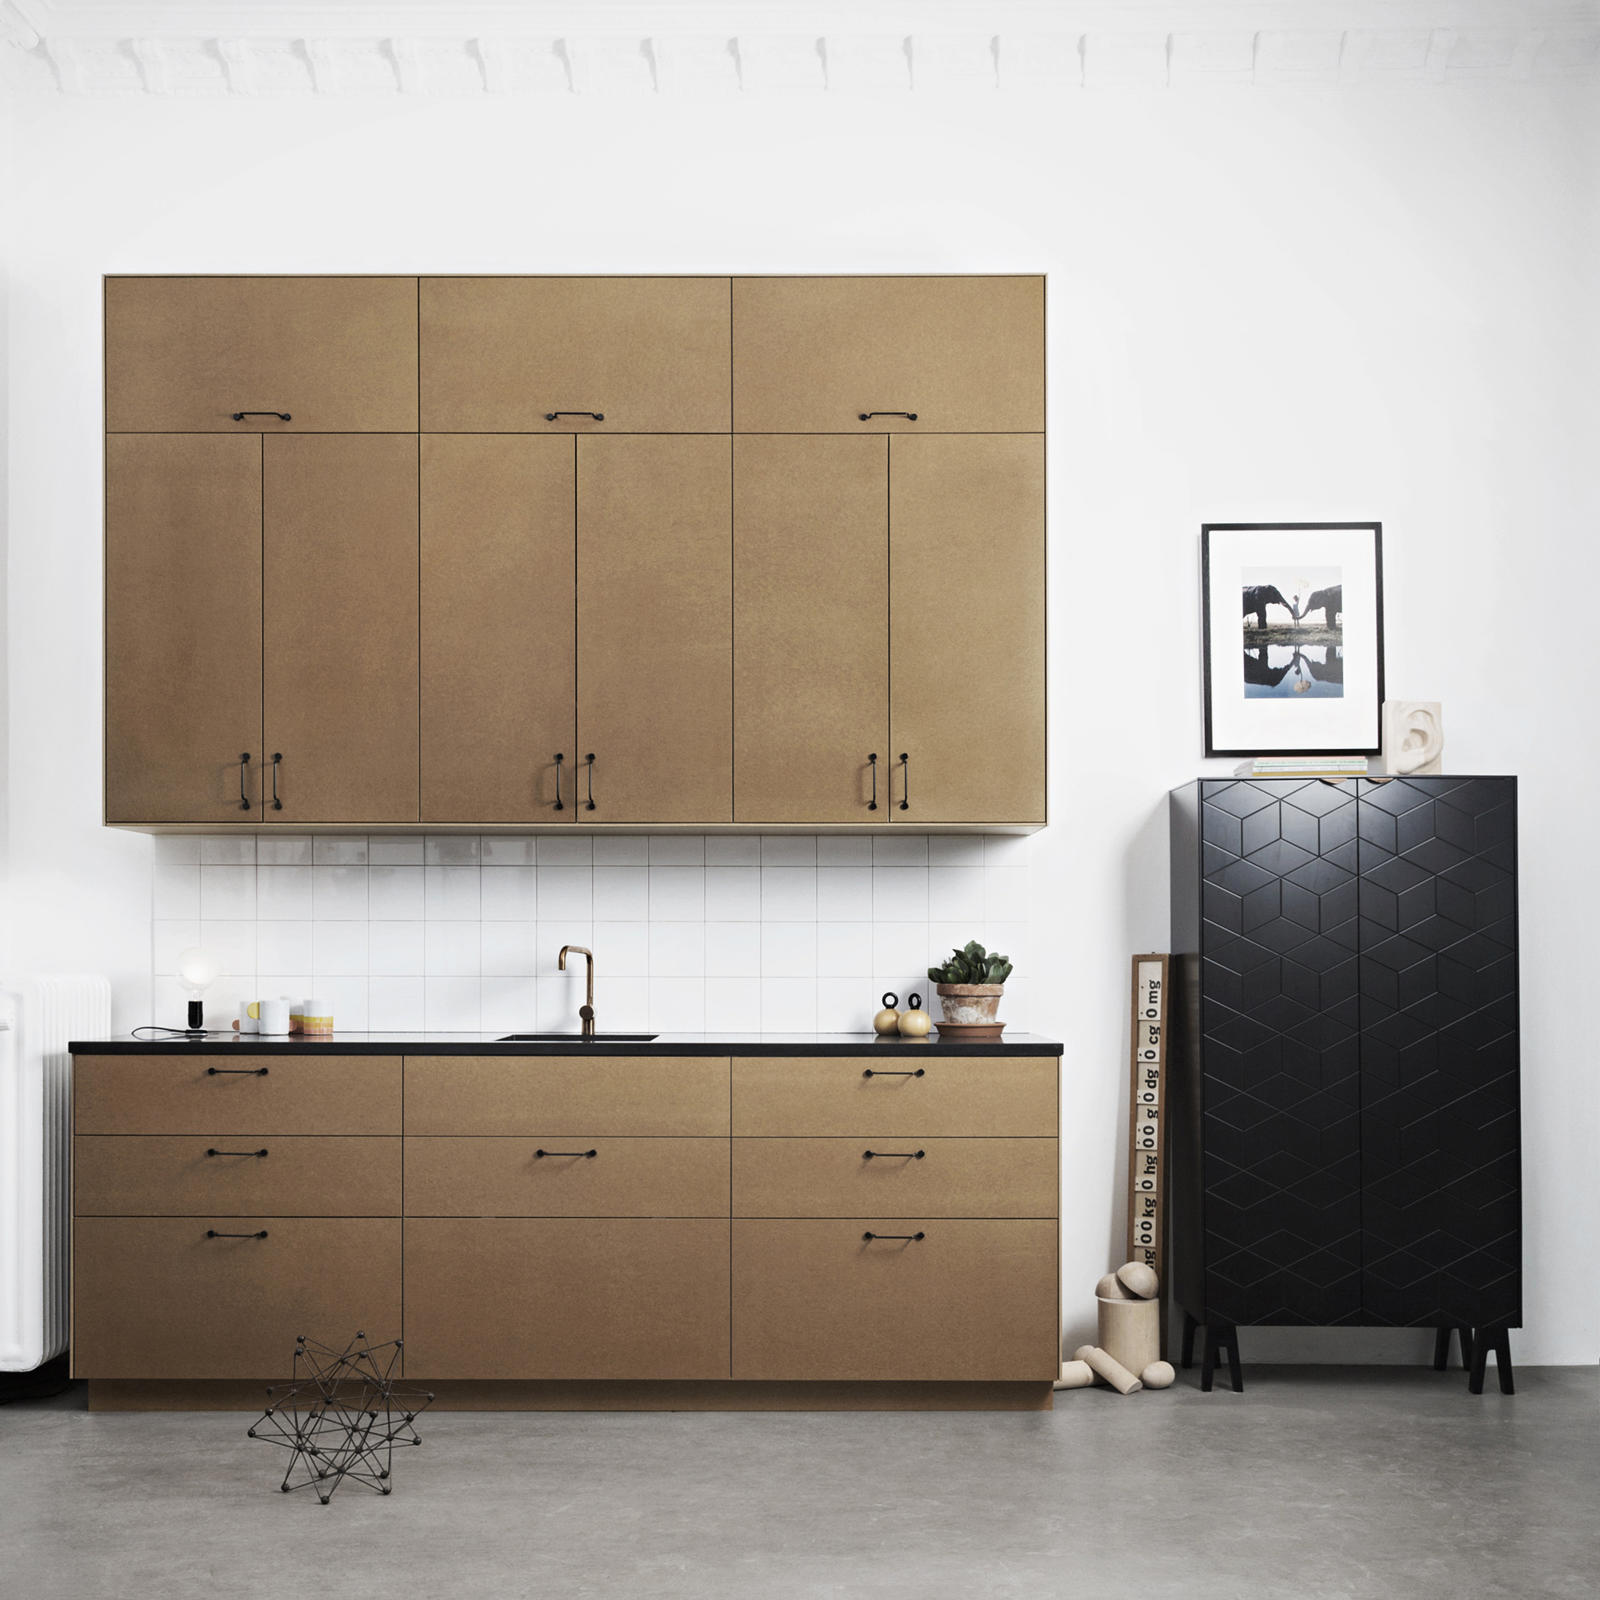 Naked In The Kitchen: WIRE - All Handles